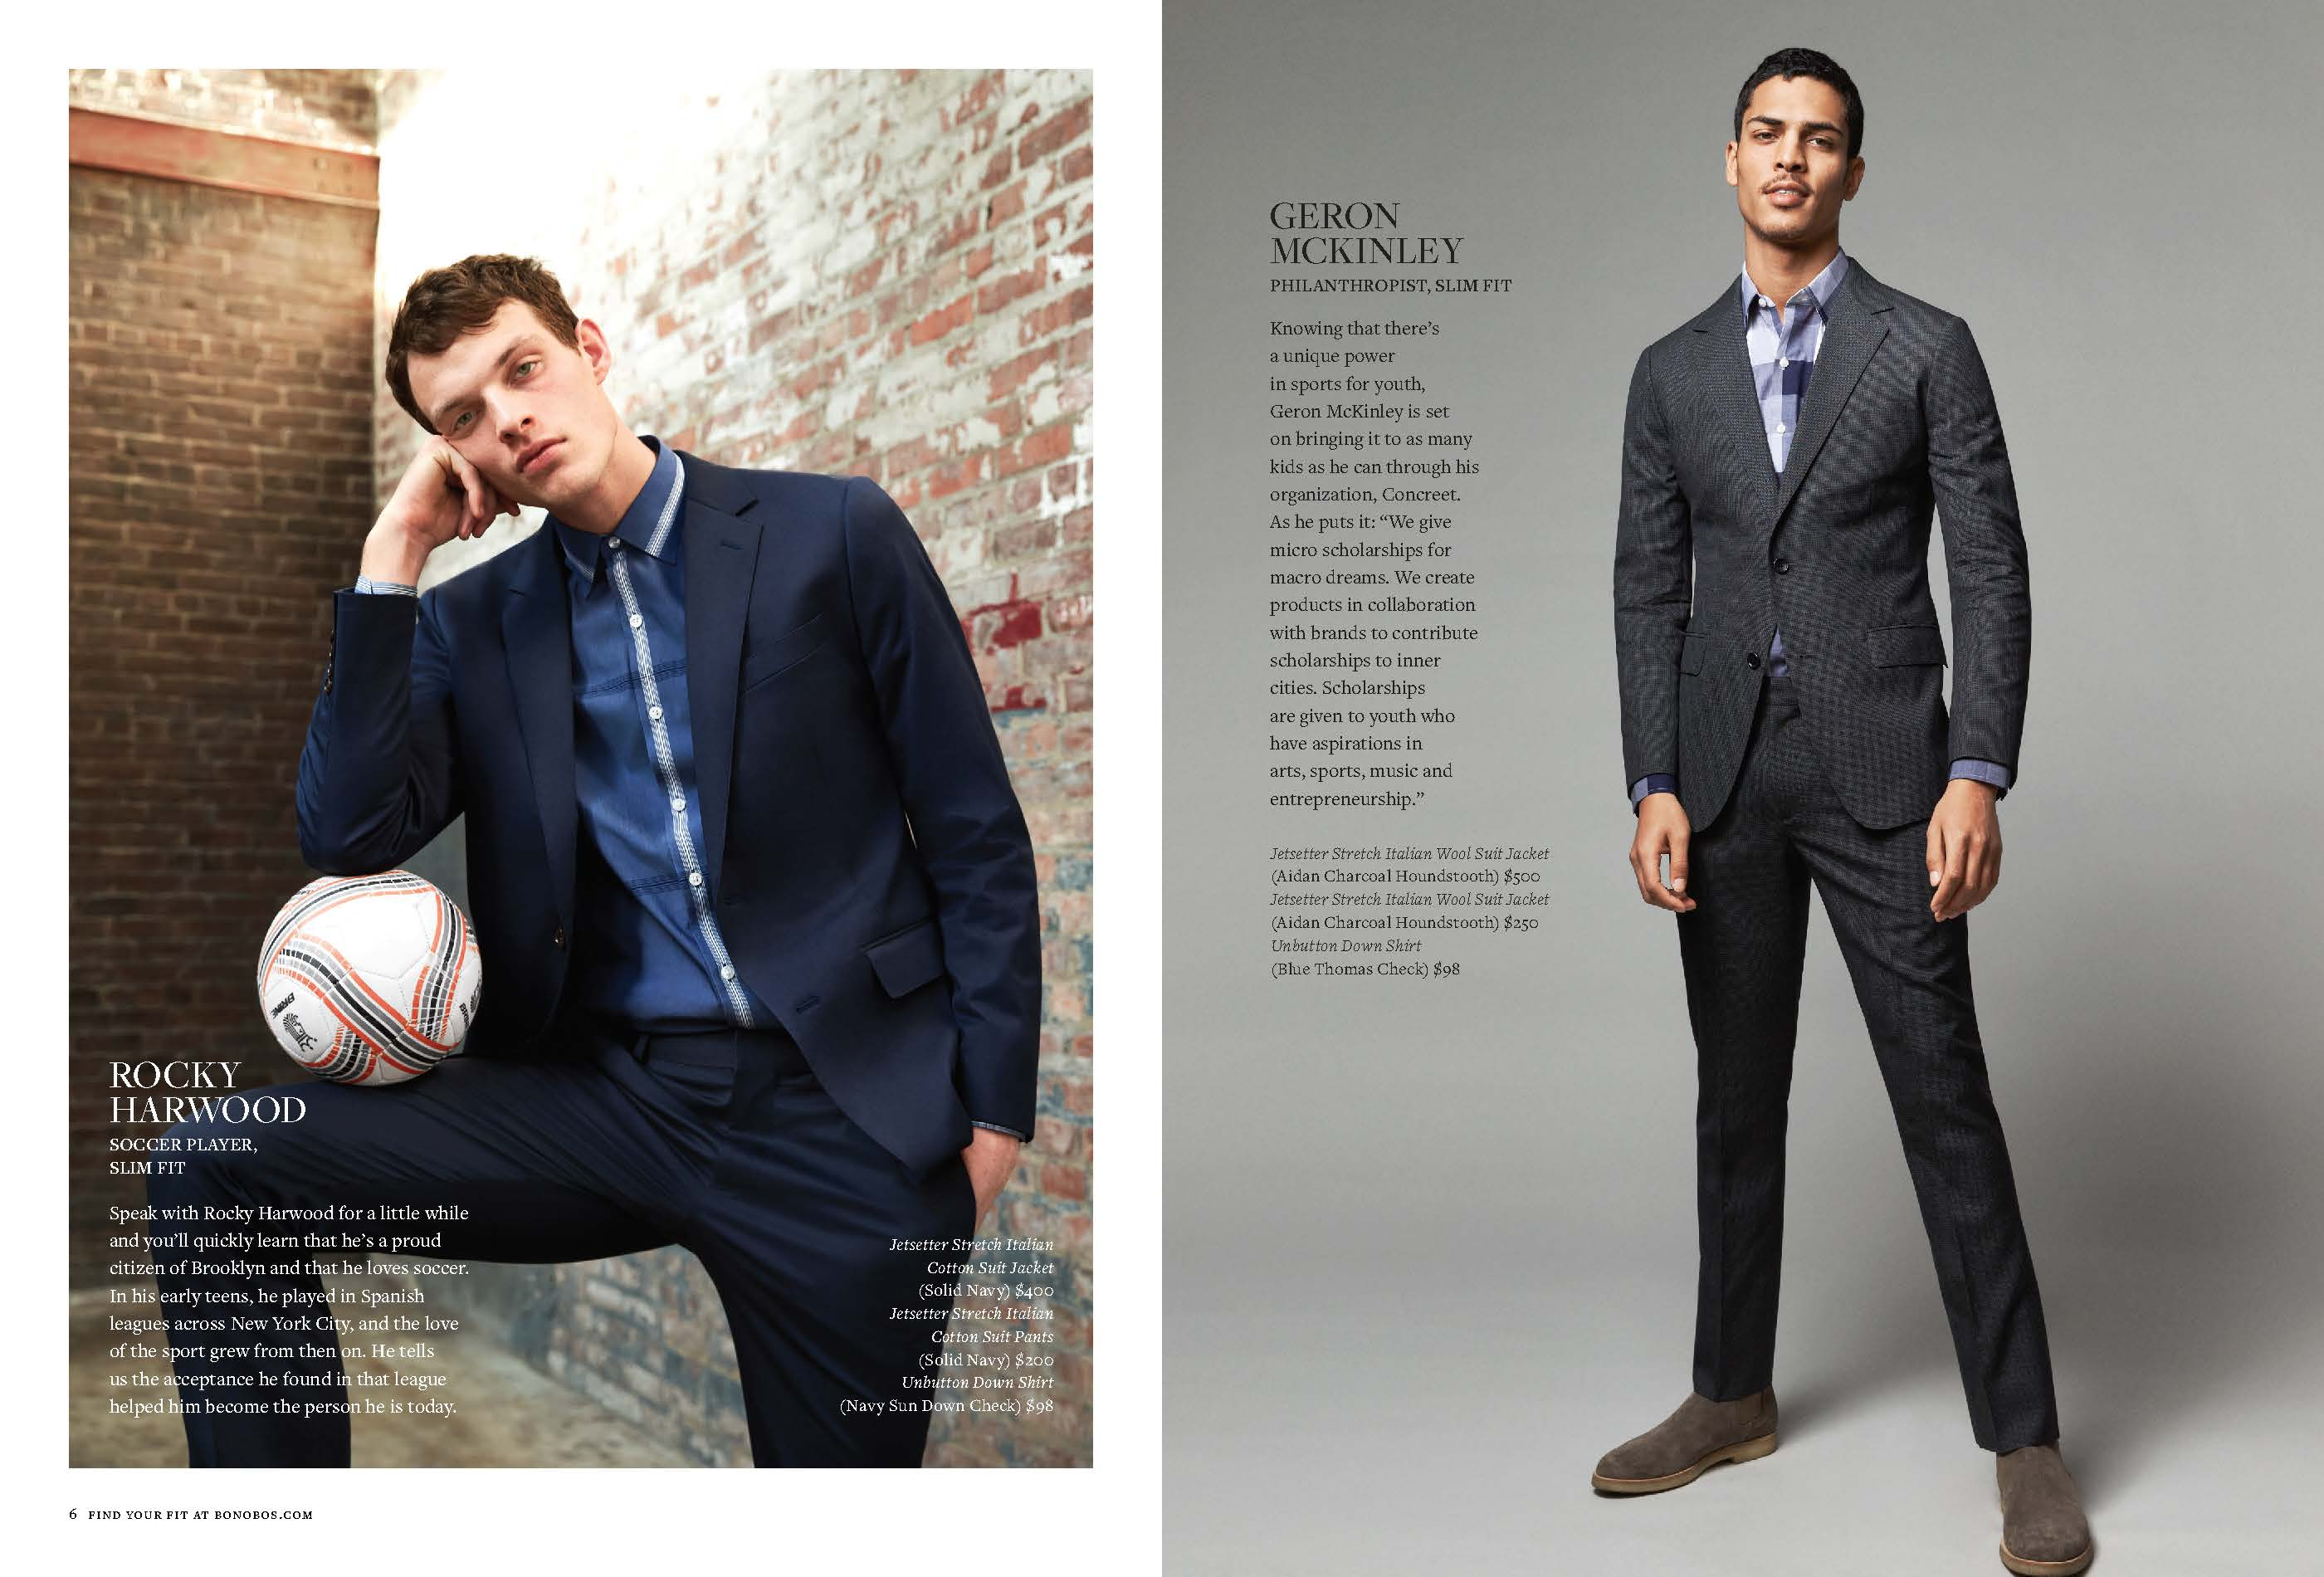 Bonobos: Athletically Inclined